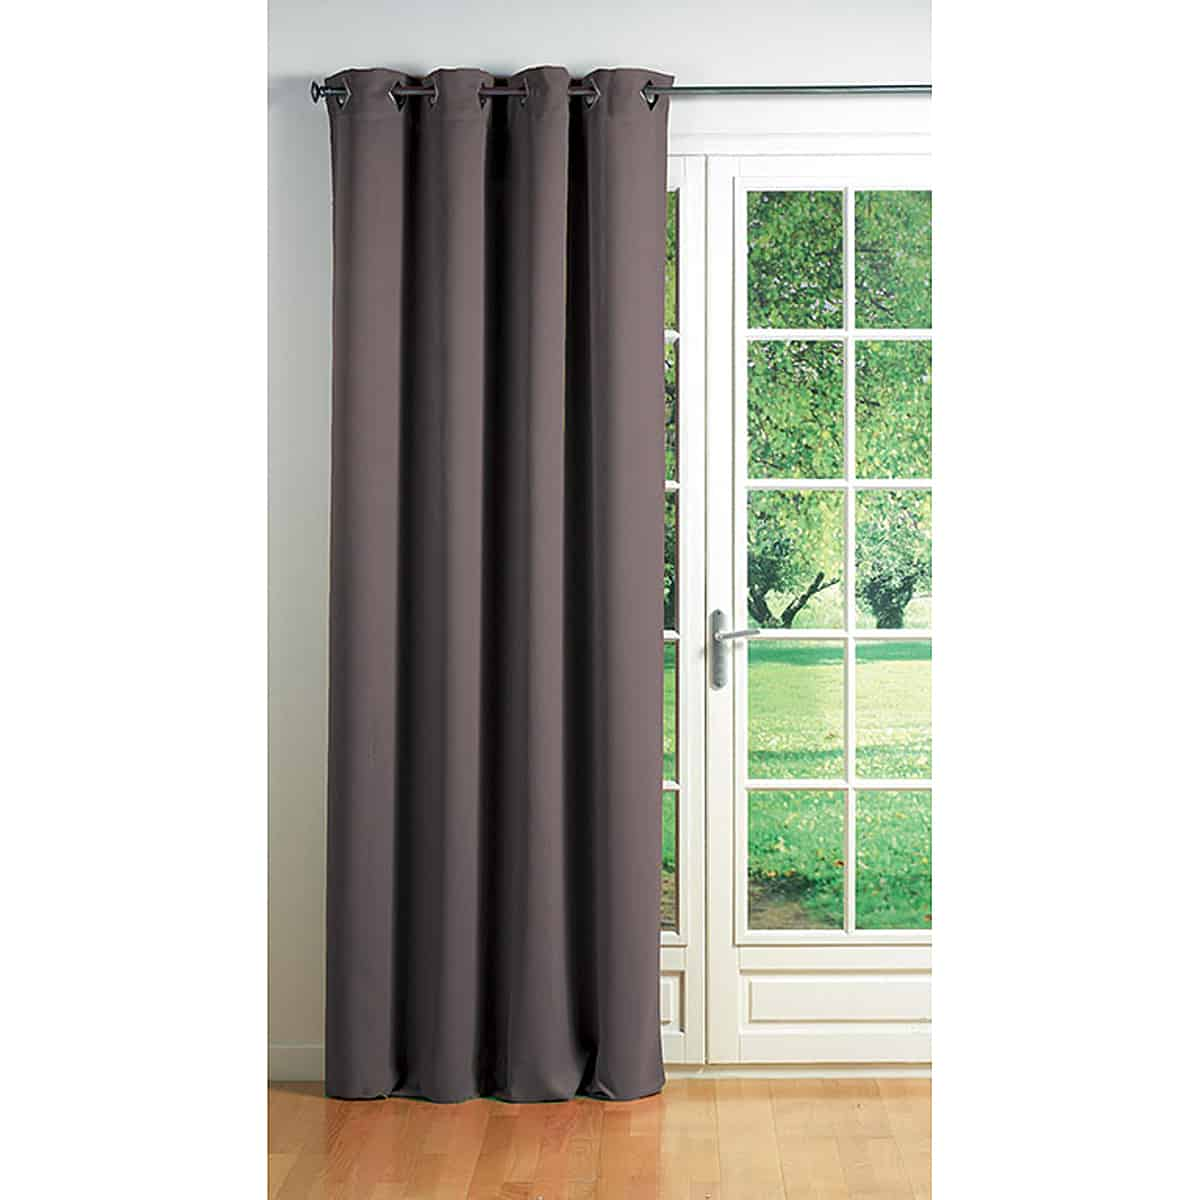 Blackout Window Curtain Panel Square Grommets Cocoon Solid Color 55 W x 102''L Taupe